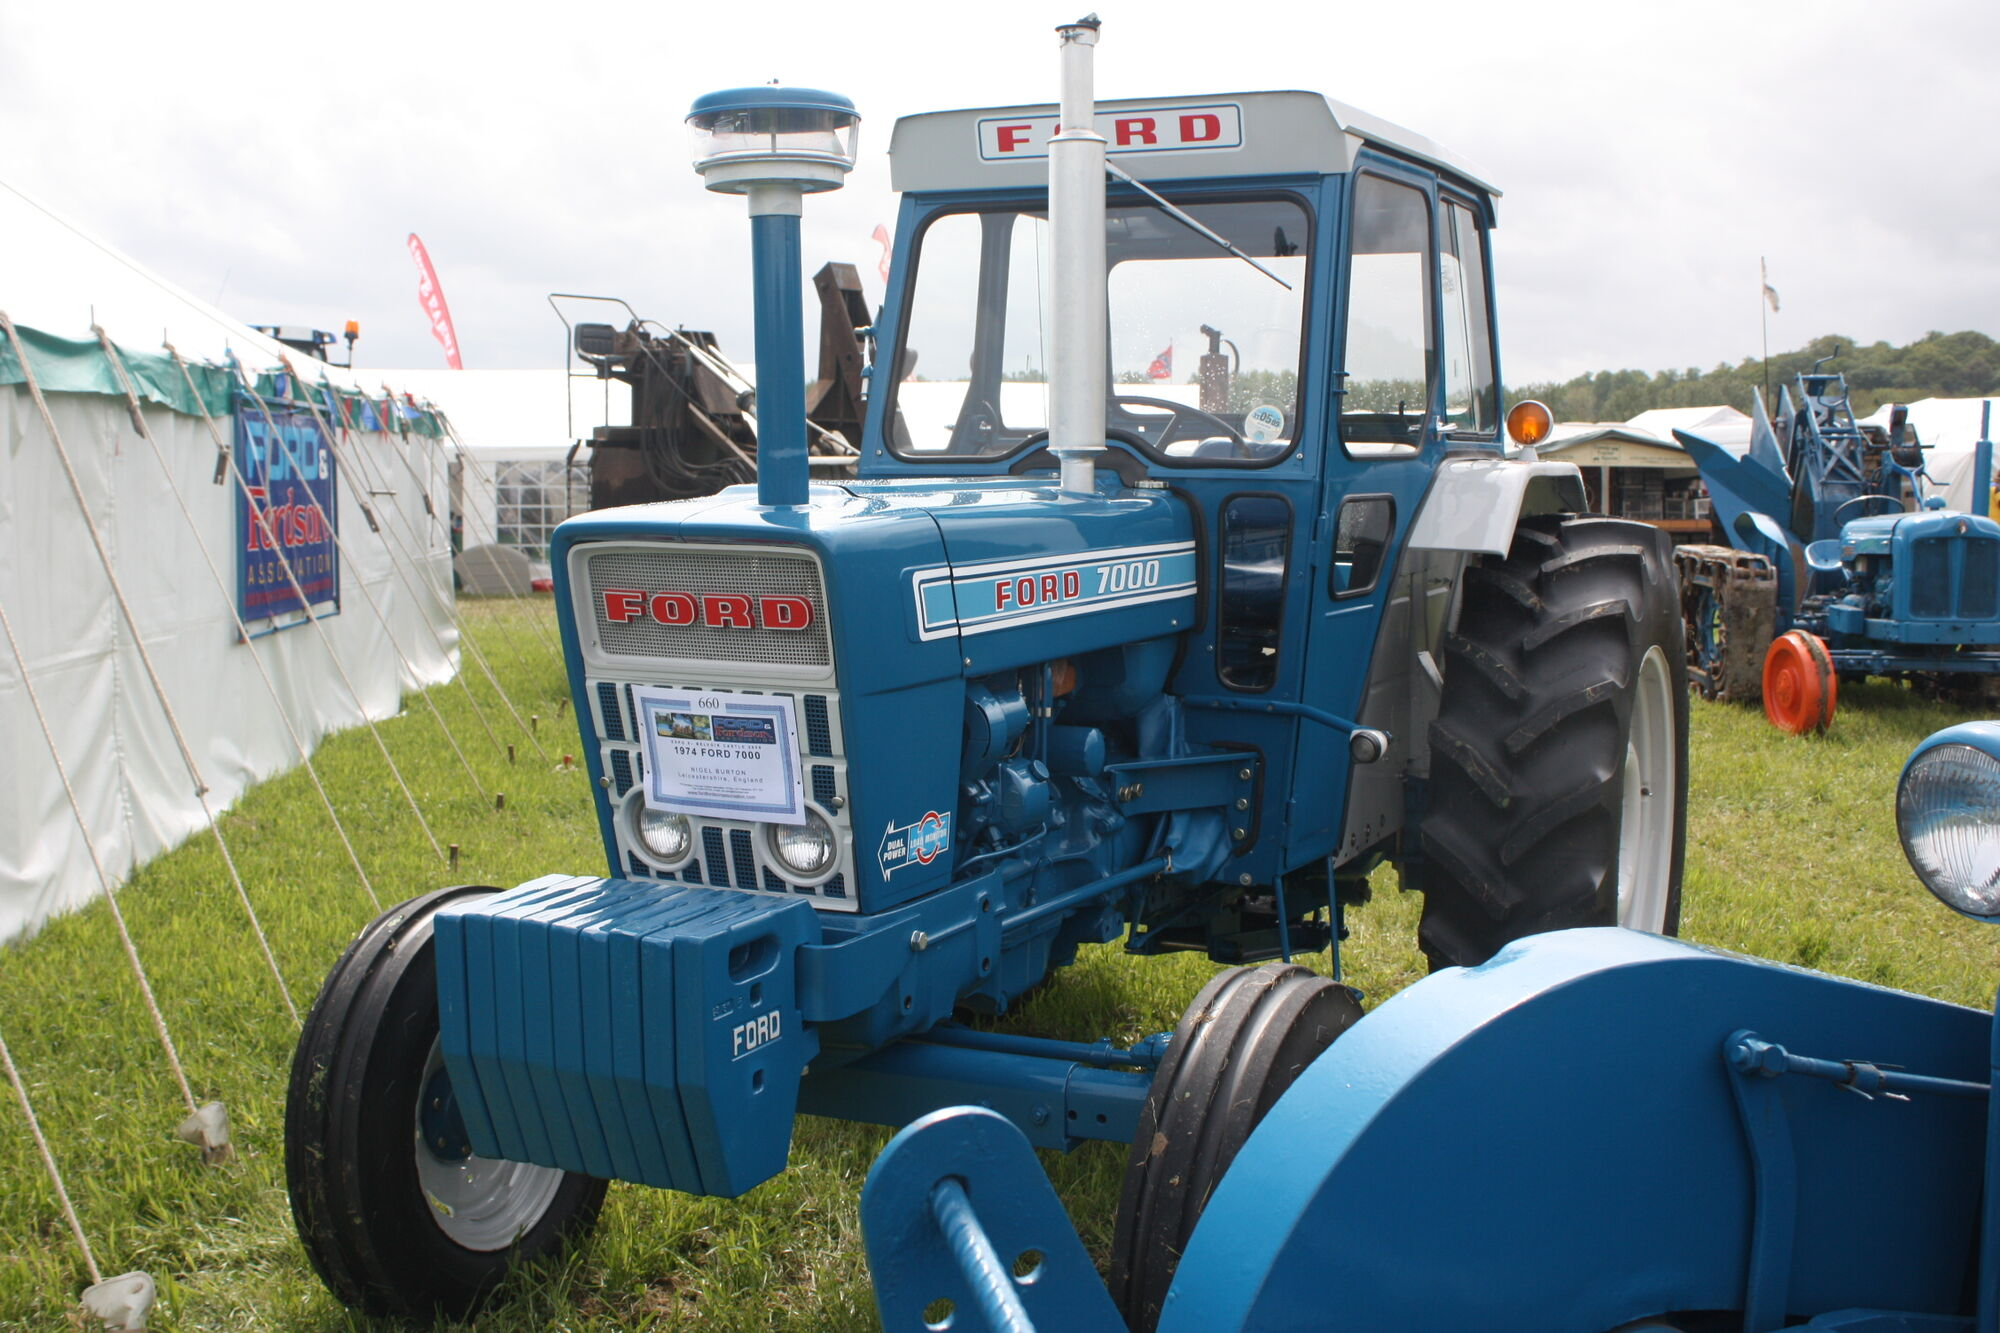 Ford 7000 Tractor : Ford tractor construction plant wiki fandom